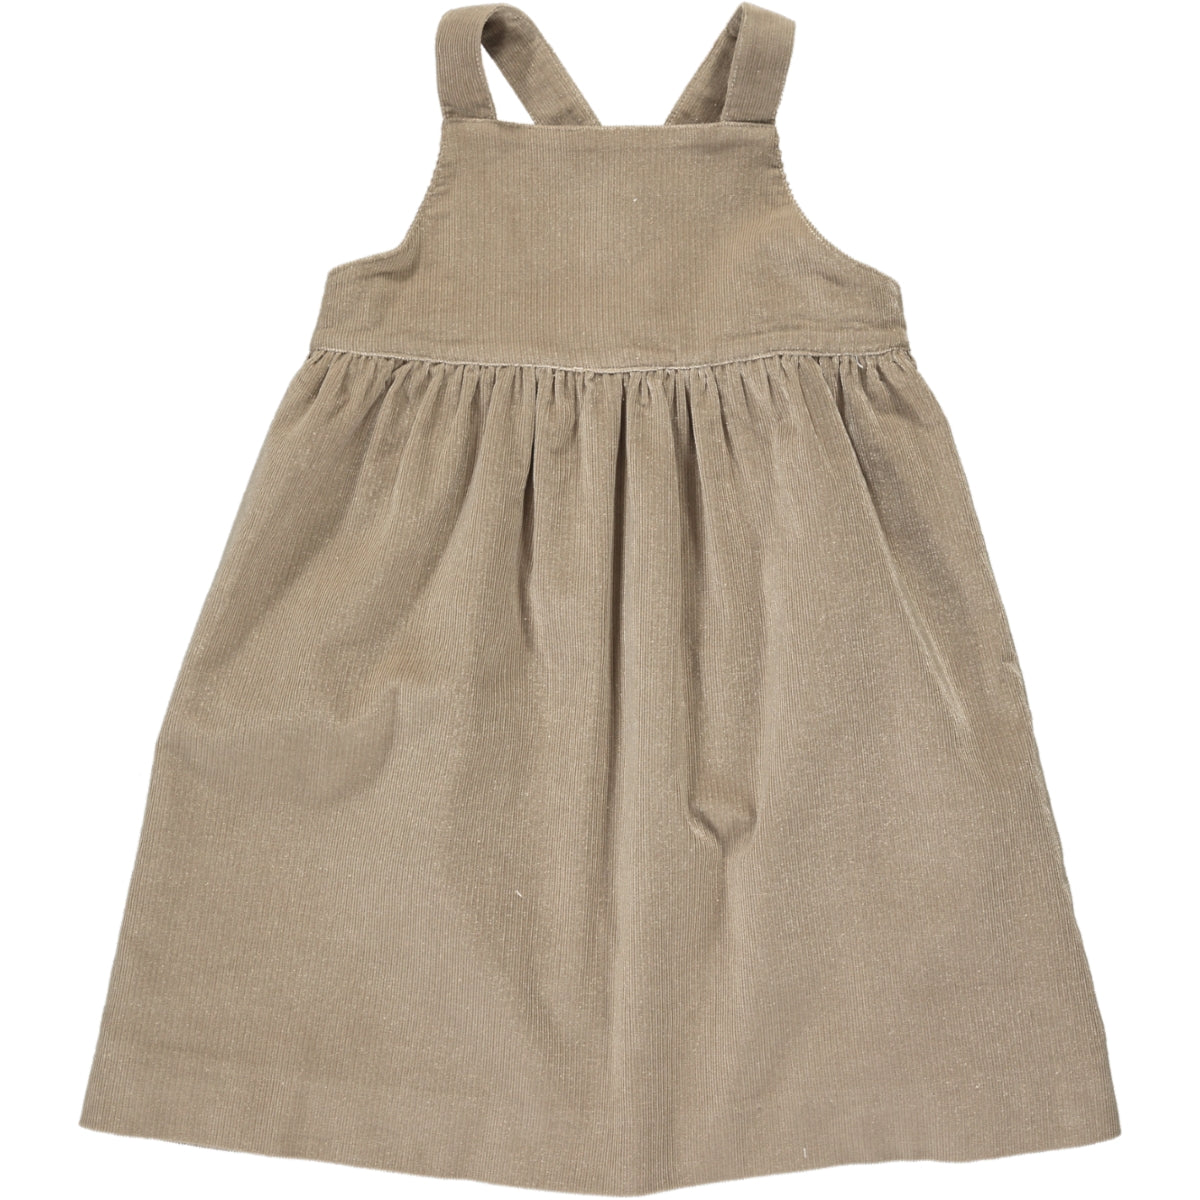 Pichi Strap Dress Beige